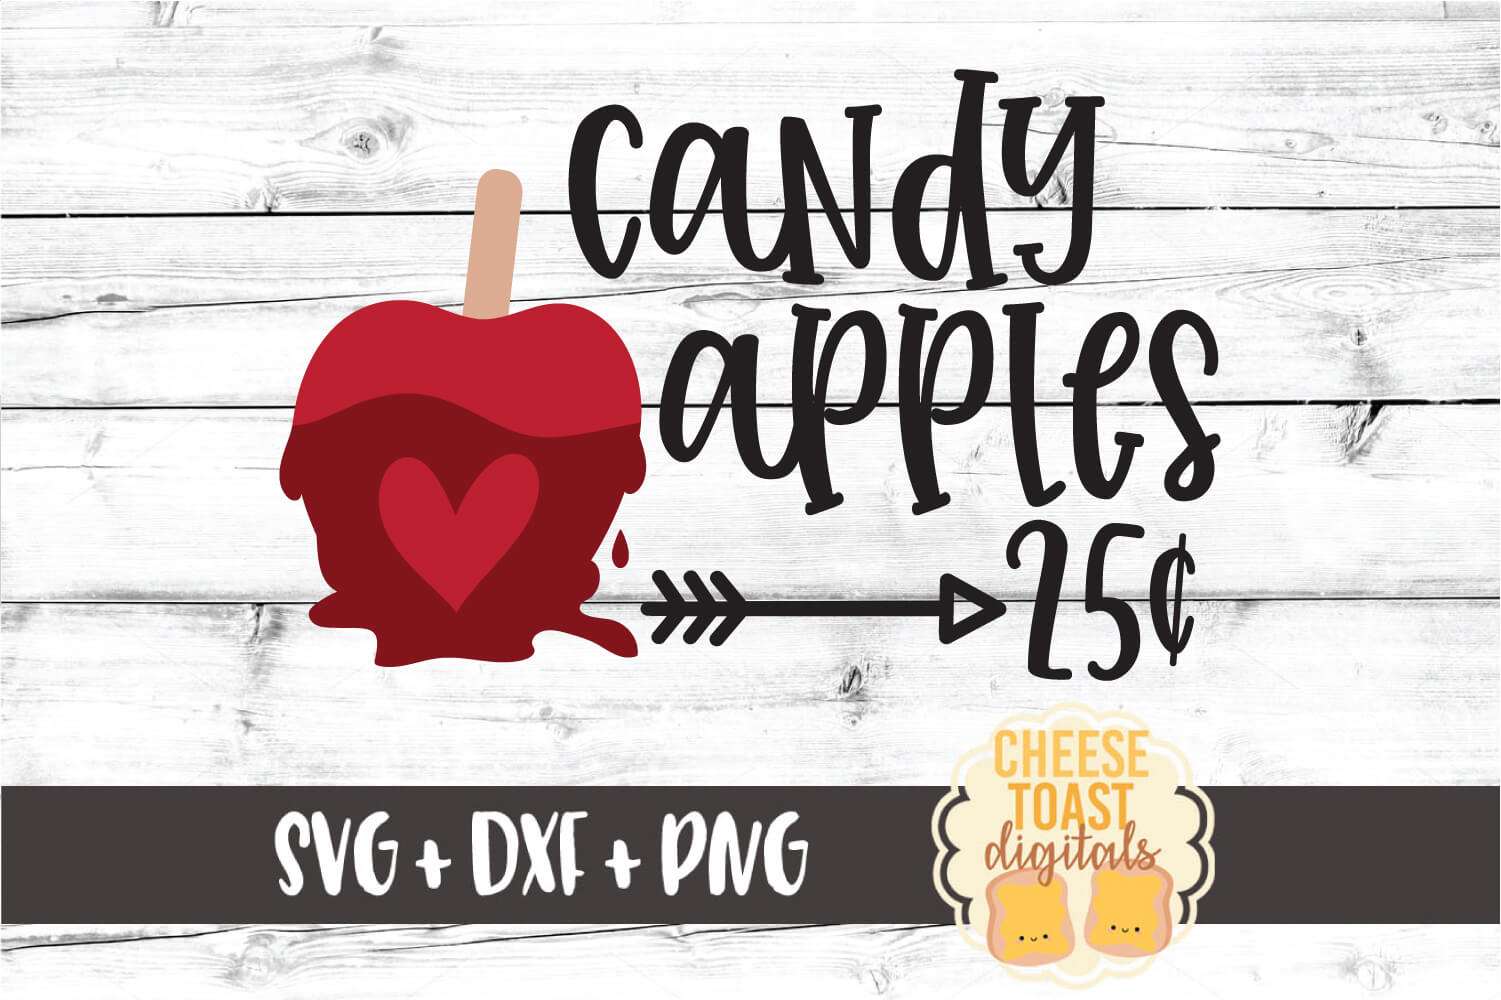 Candy Apples 25 Cents - Fall Sign SVG PNG DXF Cut Files example image 2